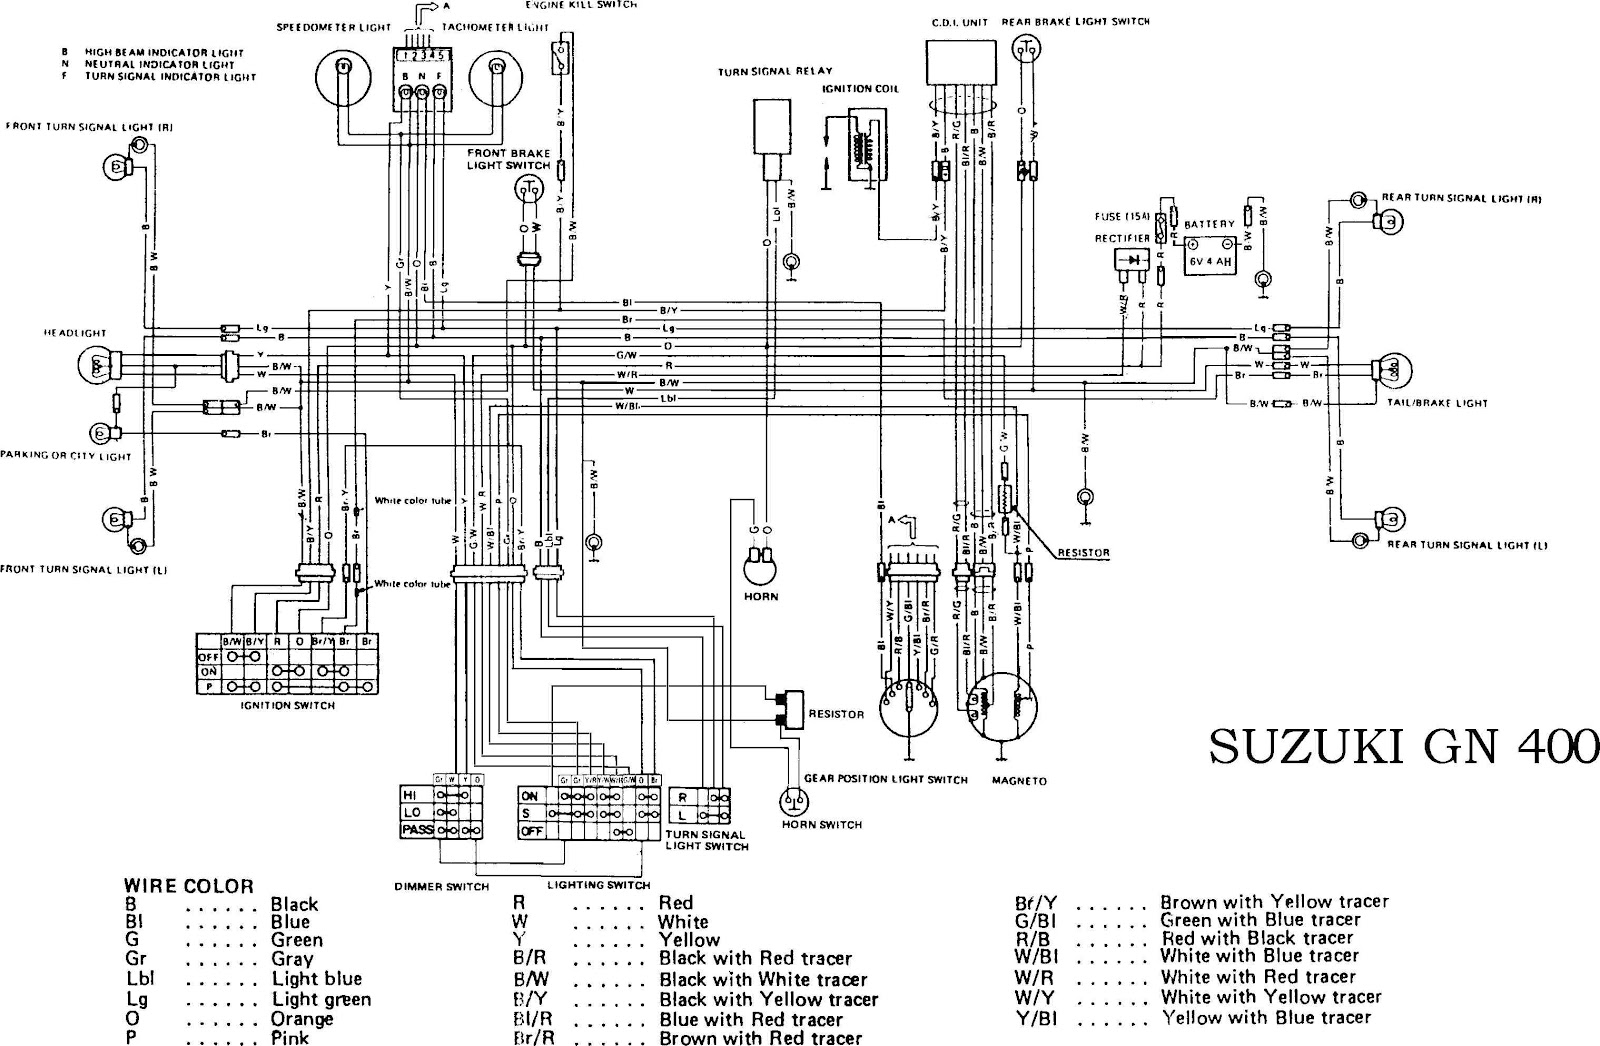 Suzuki+GSX R600+SRAD+motorcycle+1998+Complete+Electrical+Wiring+Diagram suzuki gsx r600 srad motorcycle 1998 complete electrical wiring 99 gsxr 600 wiring diagram at gsmportal.co